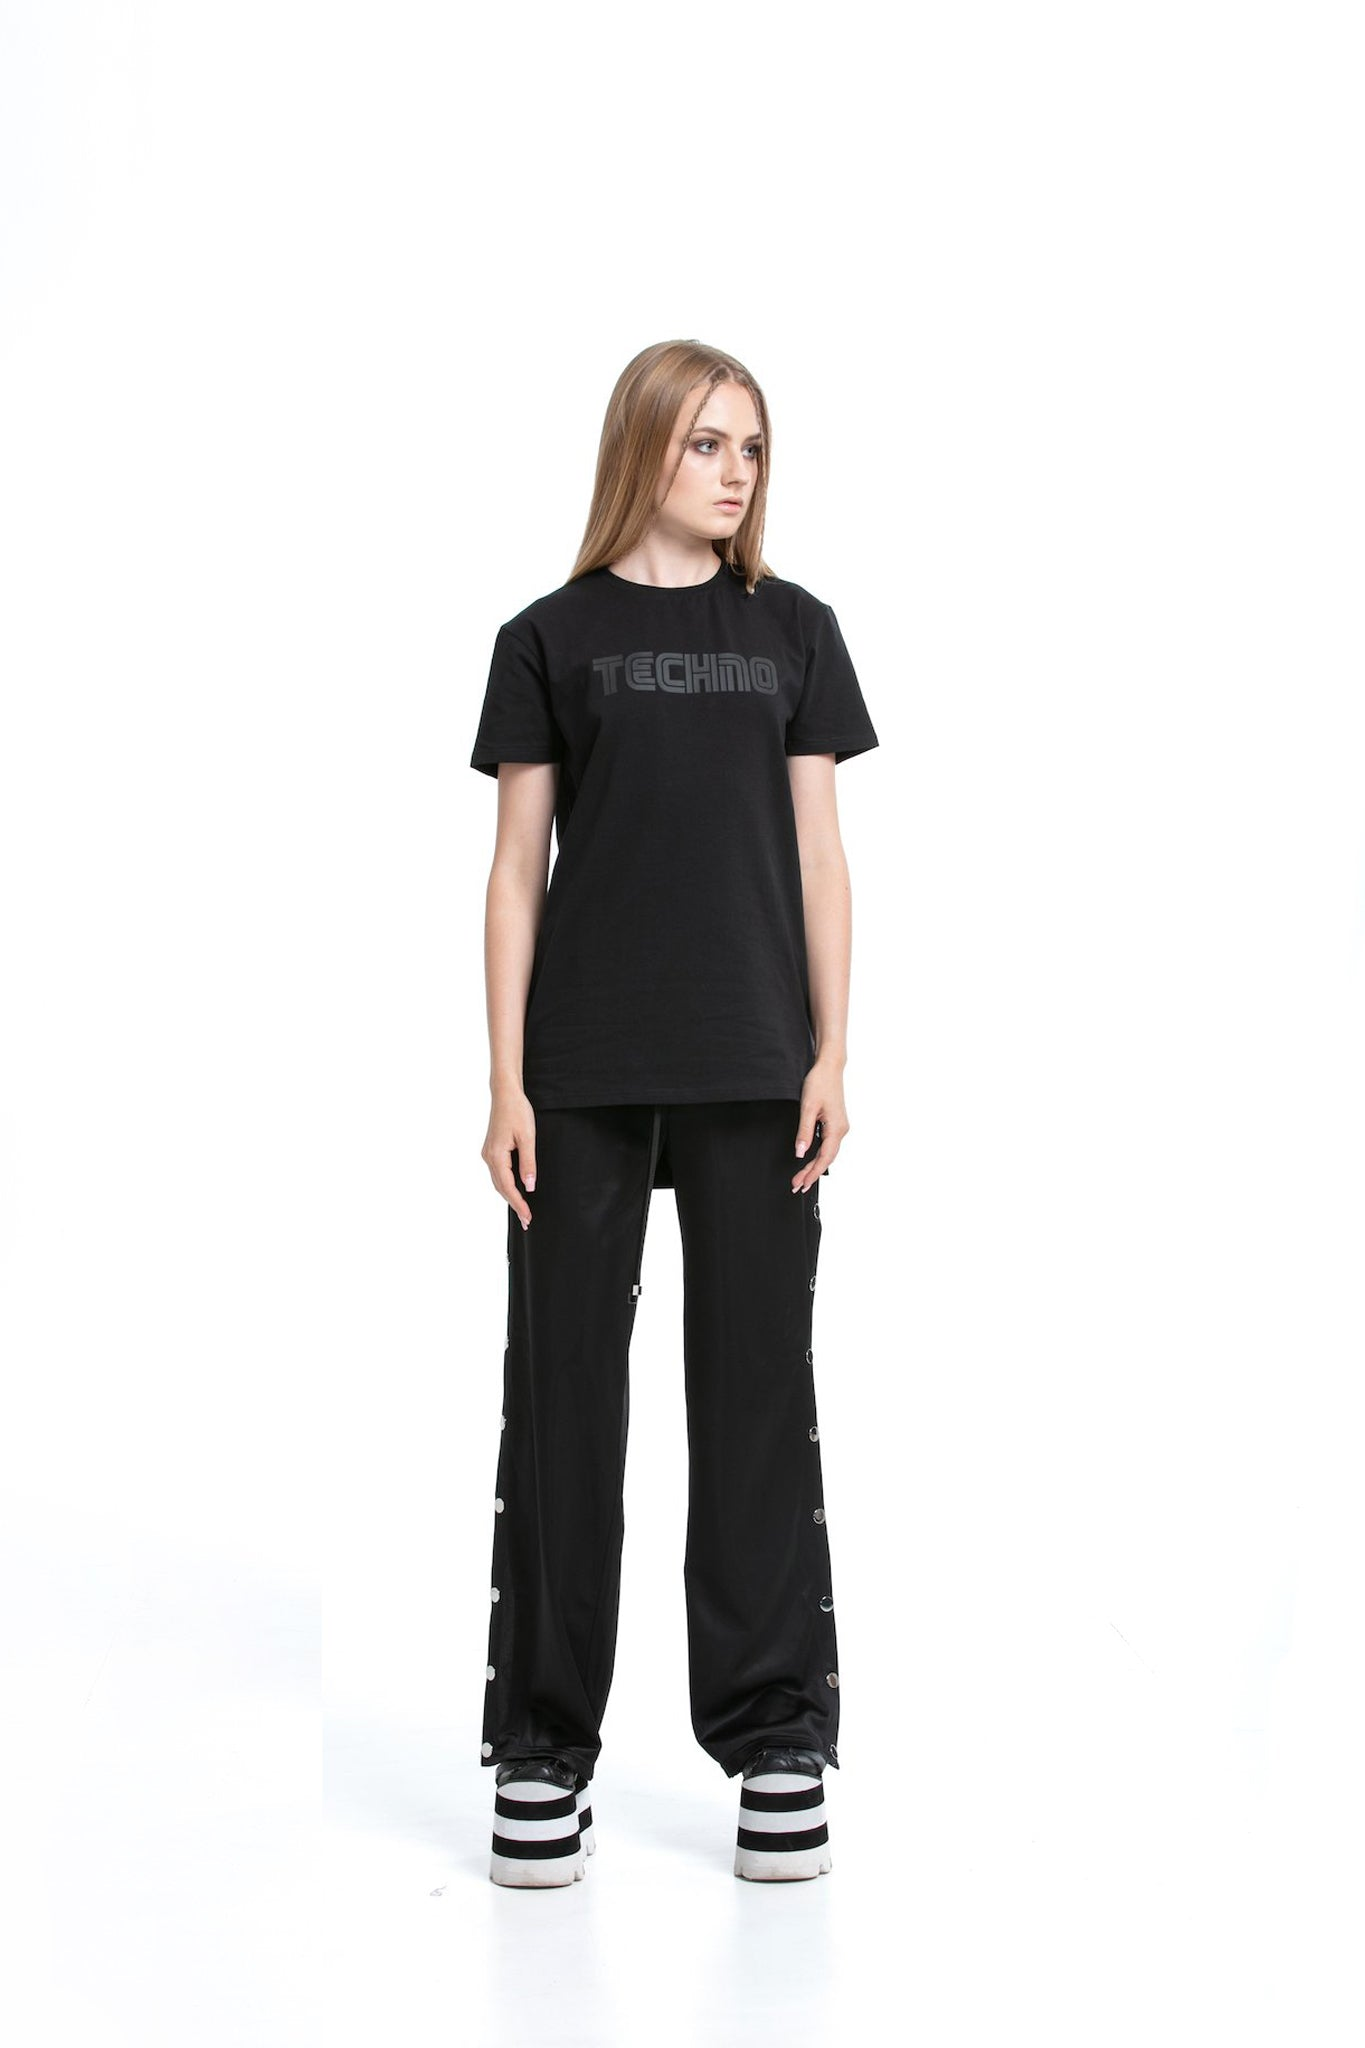 80's Techno [Black] - regular fit T-shirt with side cuts